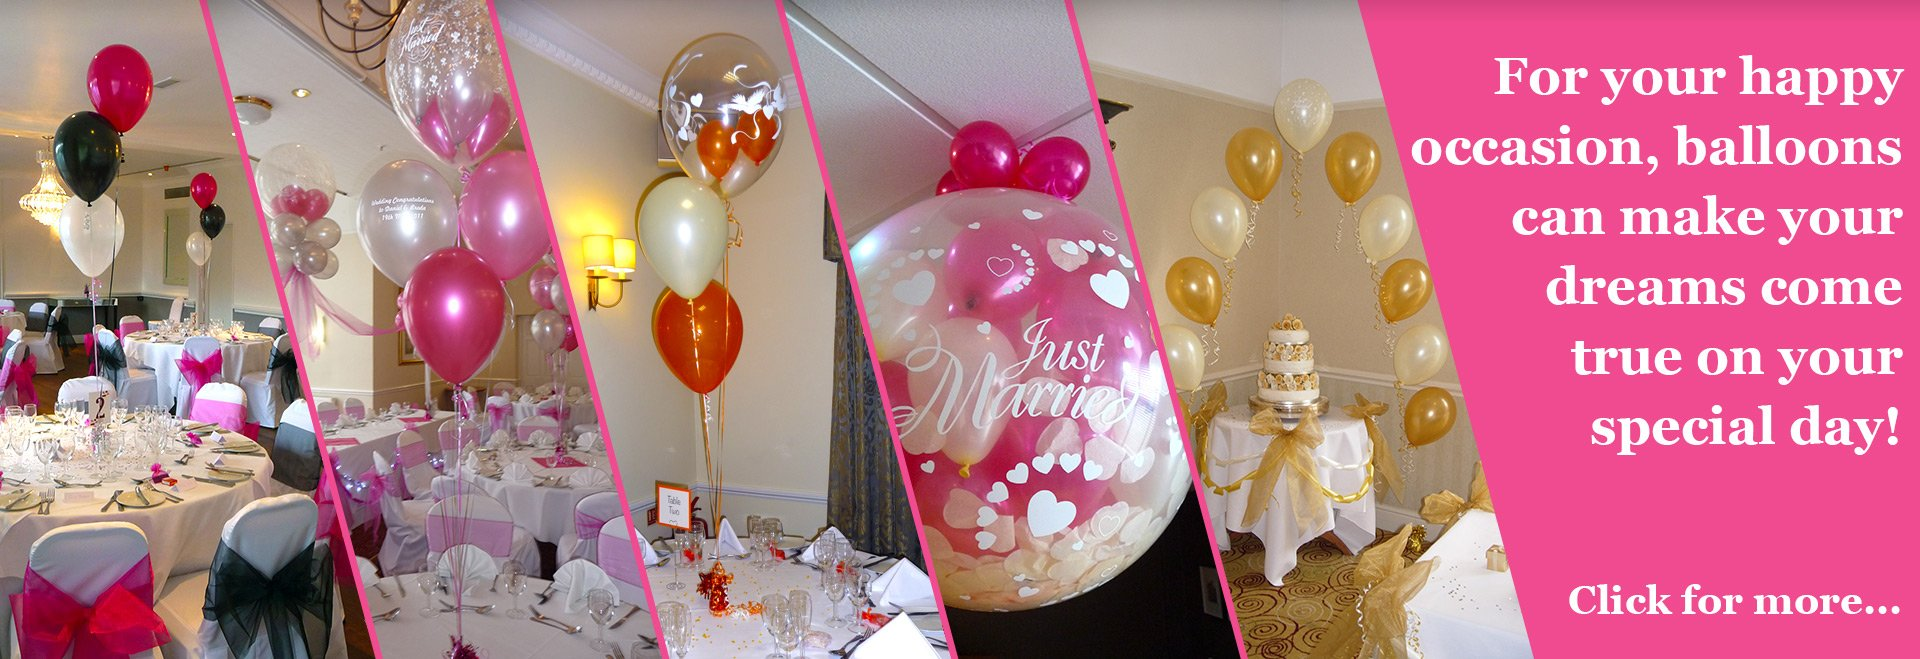 Bubbles Balloons Weddings Slide